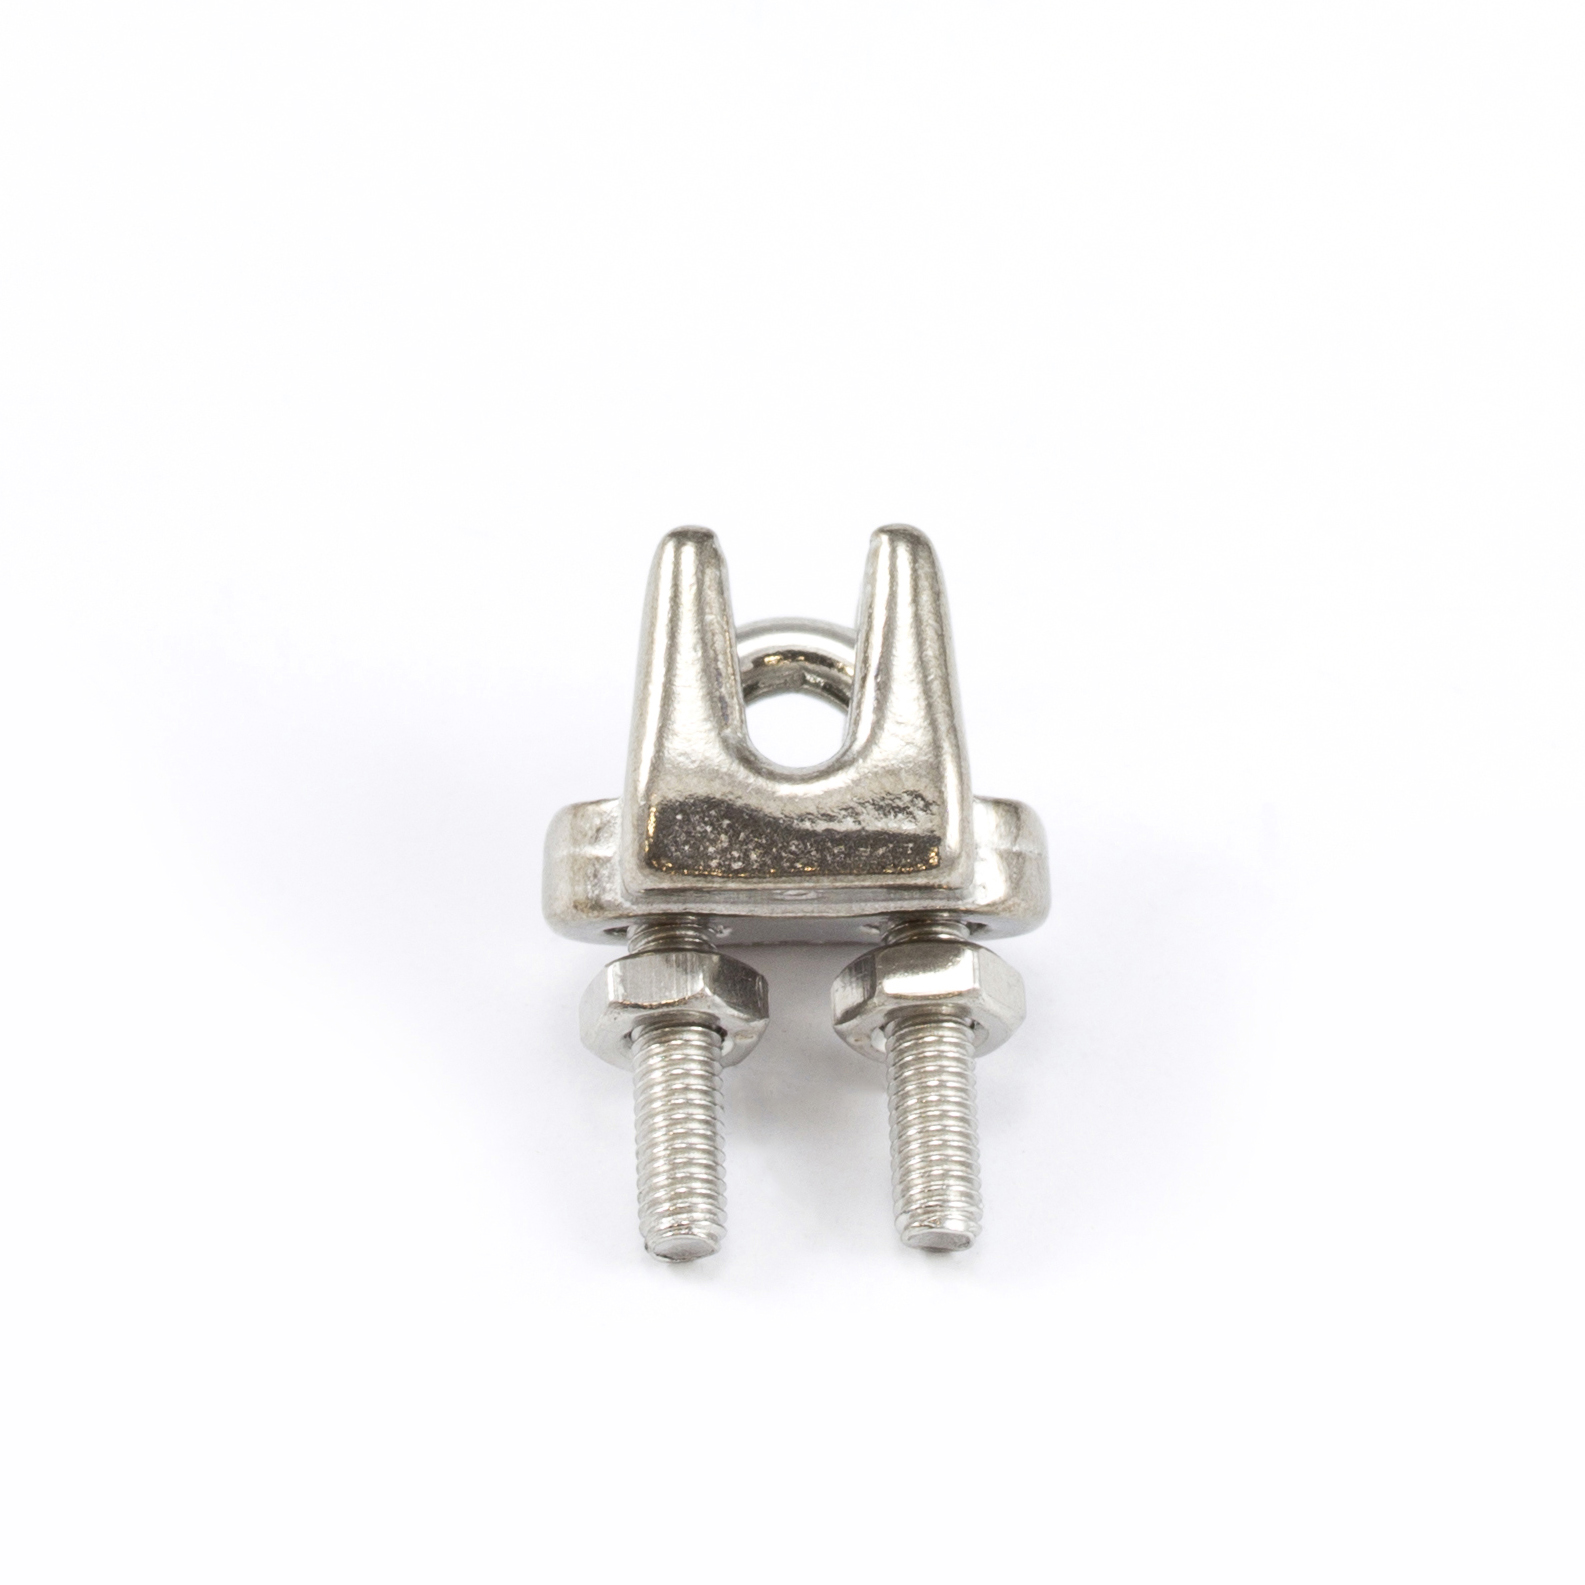 Thumbnail Polyfab Pro Rope Clamp #SS-WRC-03 3.2mm 4